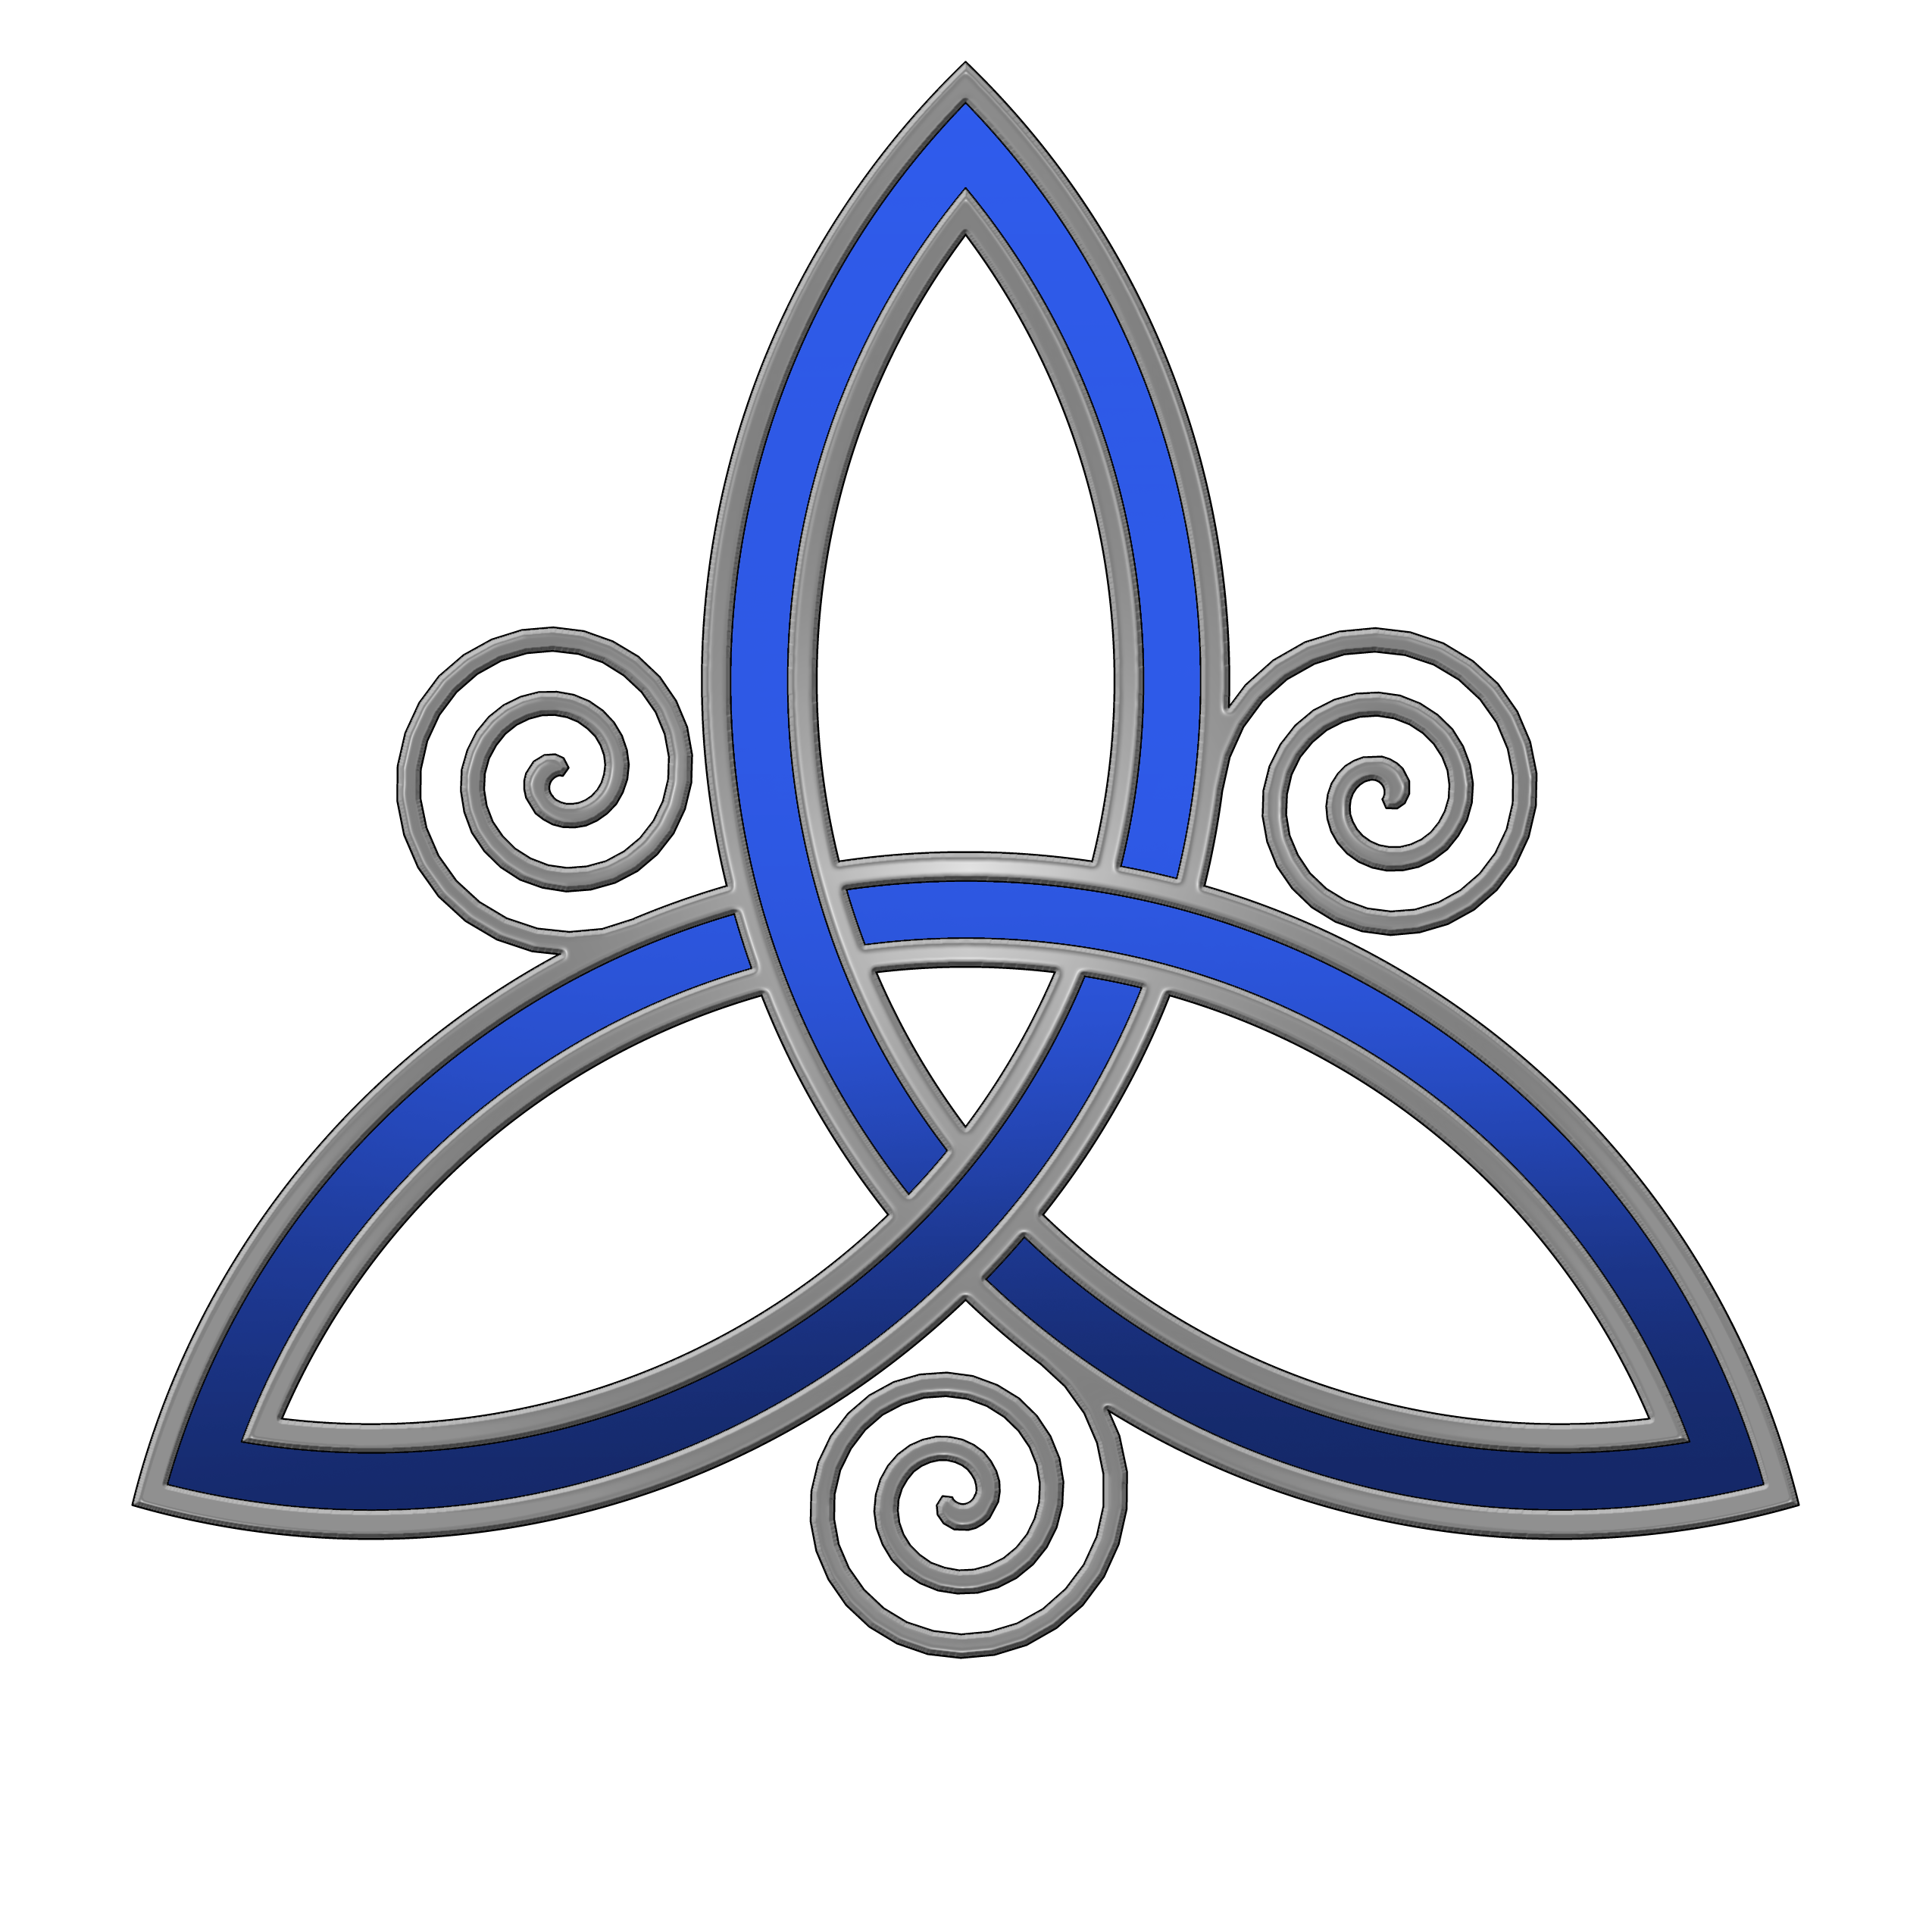 Blue trinity knot tattoo design ideas for tattoos pinterest the celtic trinity symbol meaning father son holy spirit i think beautiful symbol wa beautiful meaning it would also make an amazing tattoo biocorpaavc Choice Image